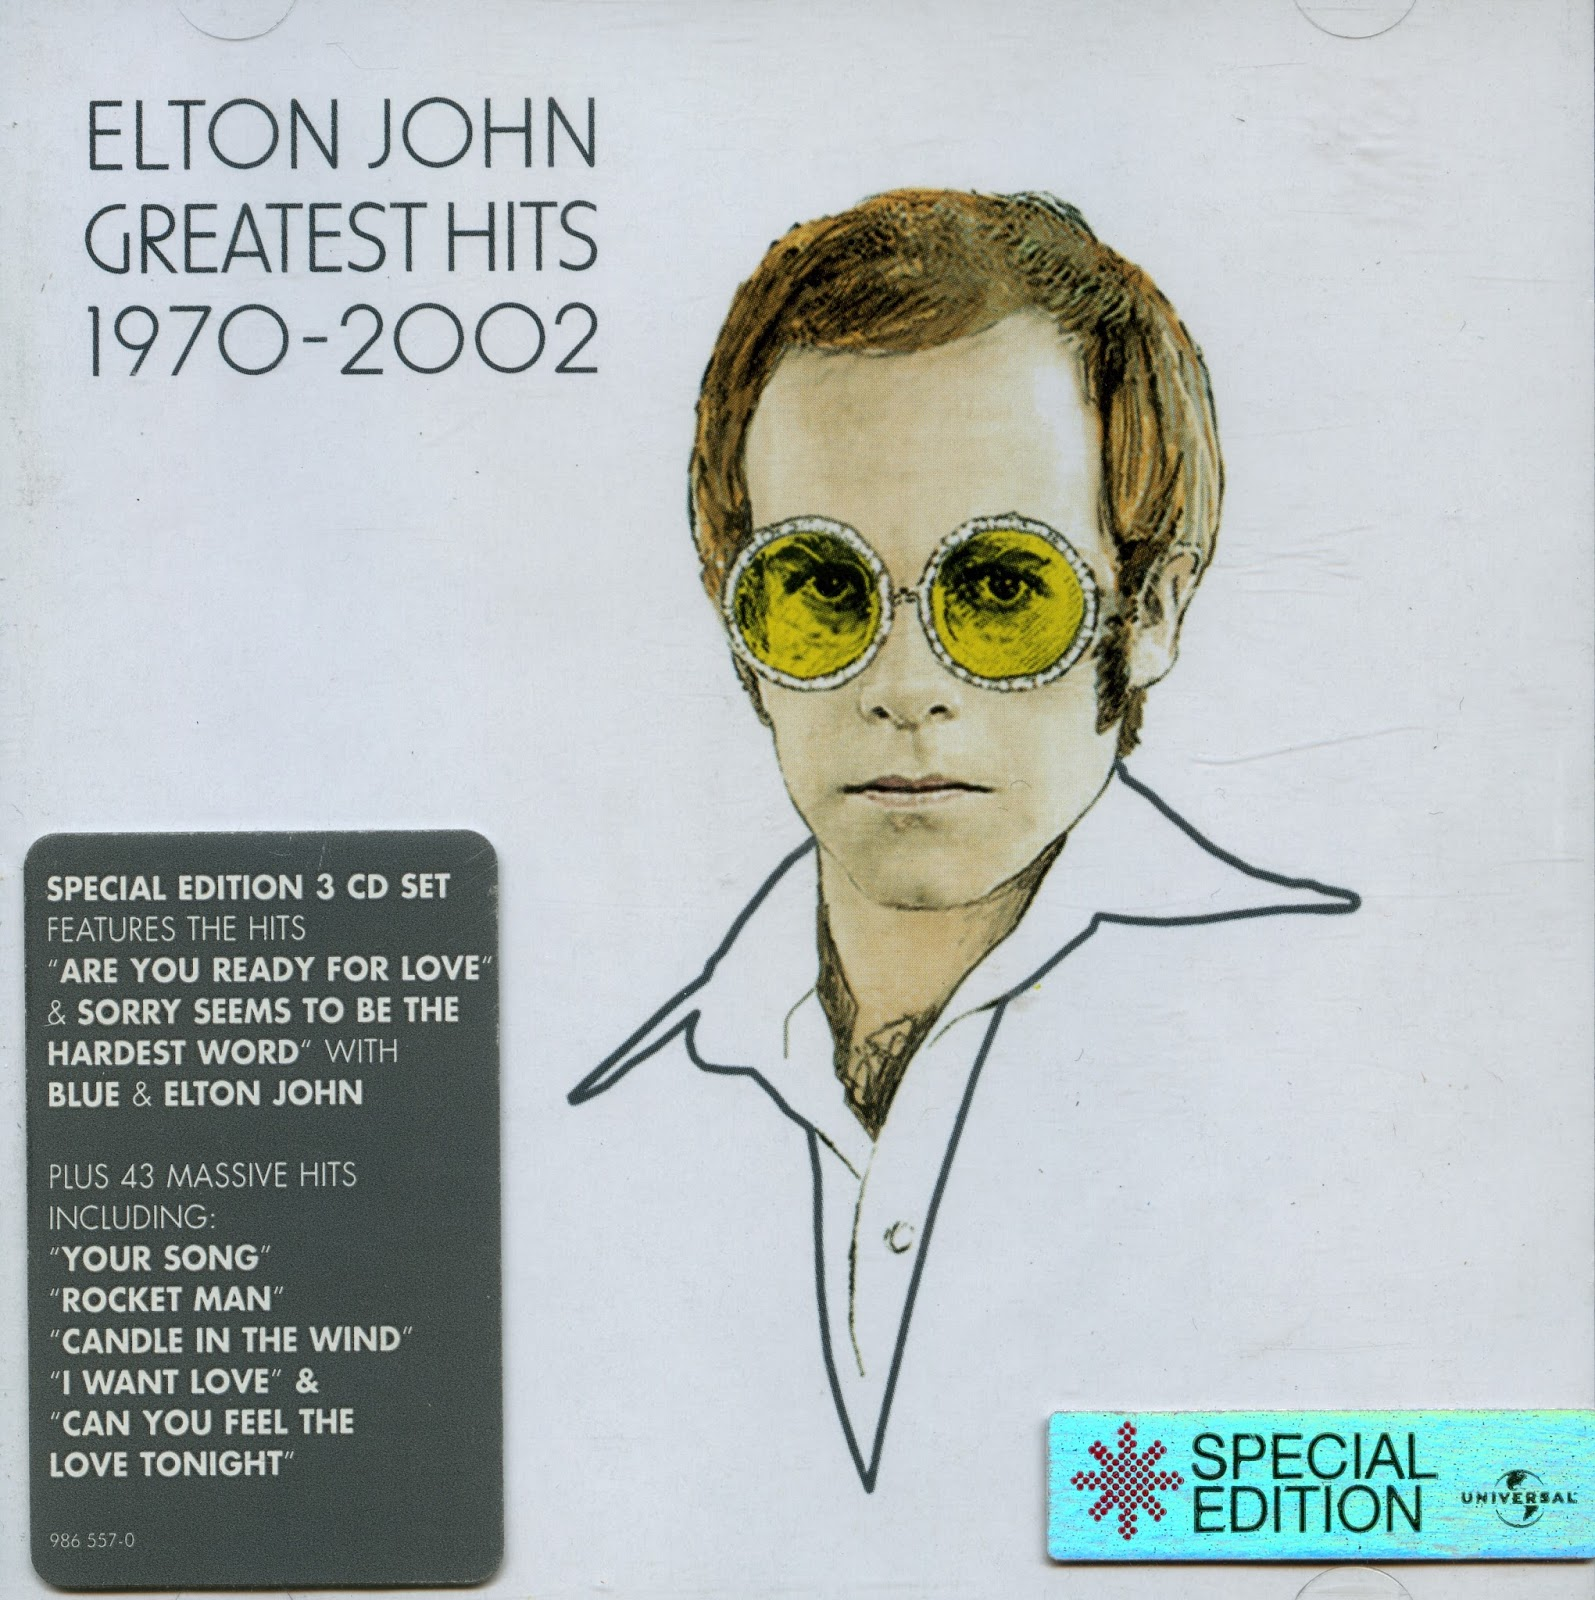 Resolution: 1051x960 pixels, elton john 2000 53686 click on a image, a category, or perform a search to get started